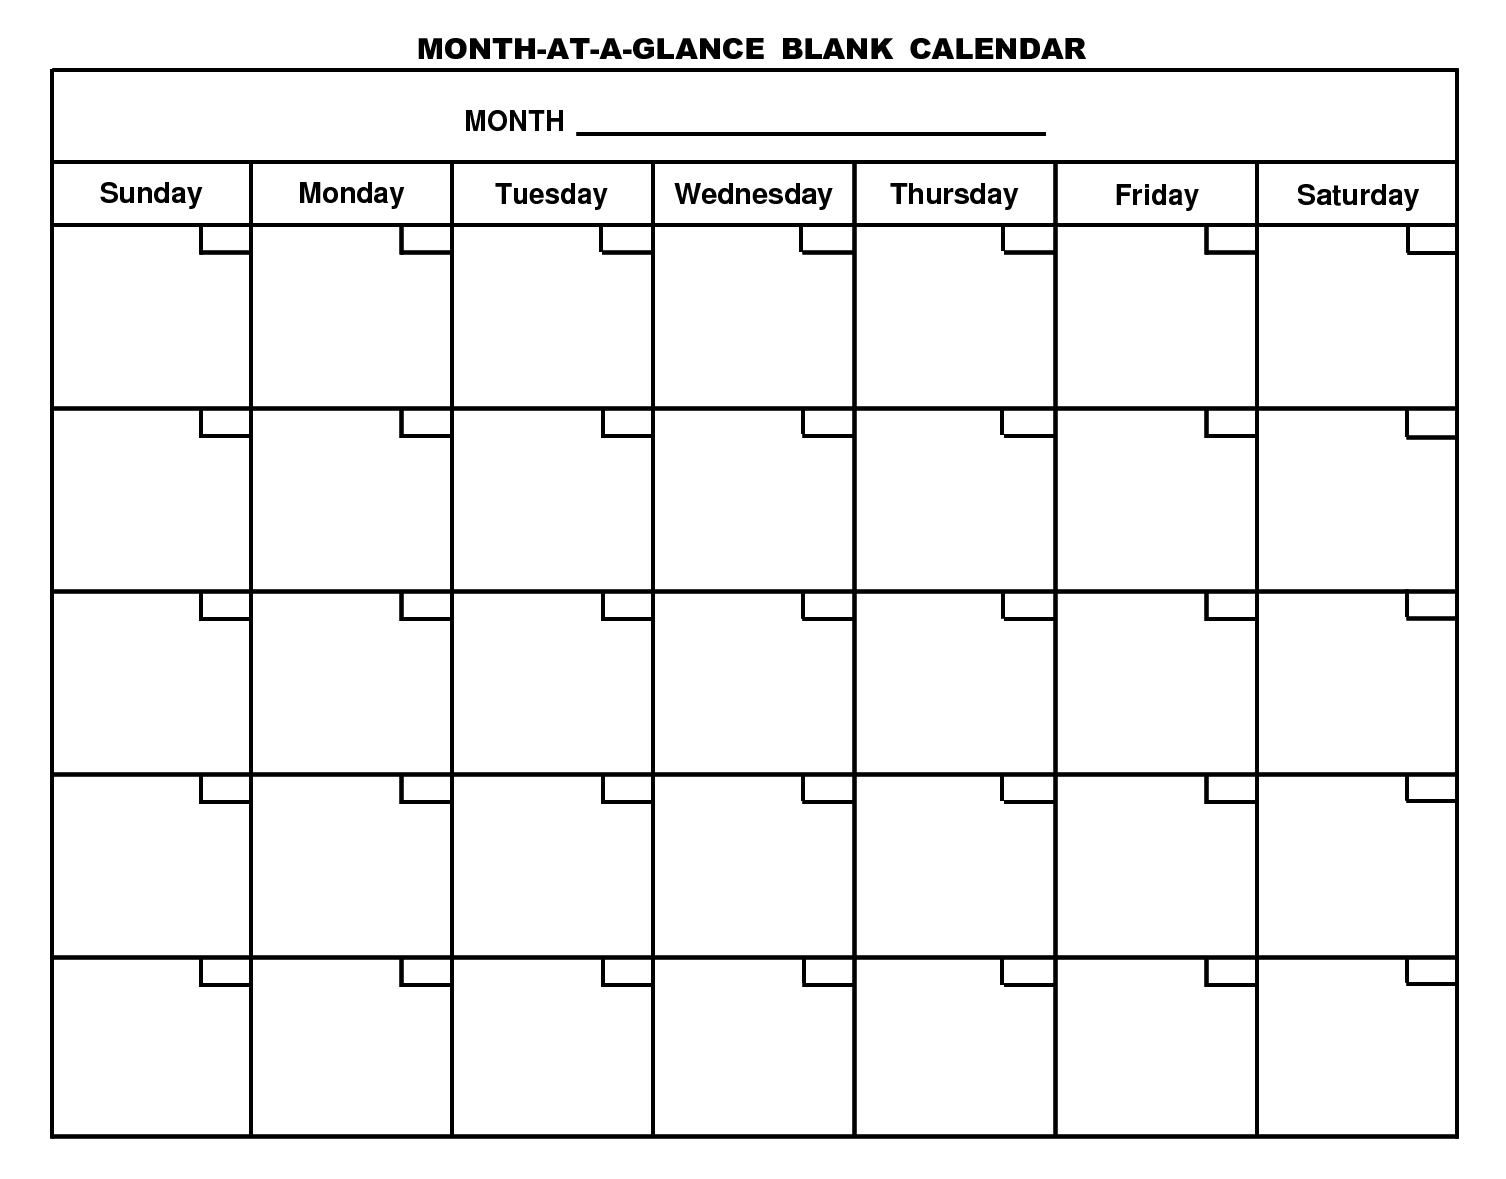 Take Blank Calendar Mon Through Fri With No Dates Or Month Mon-Fri Monthly Calendar Template